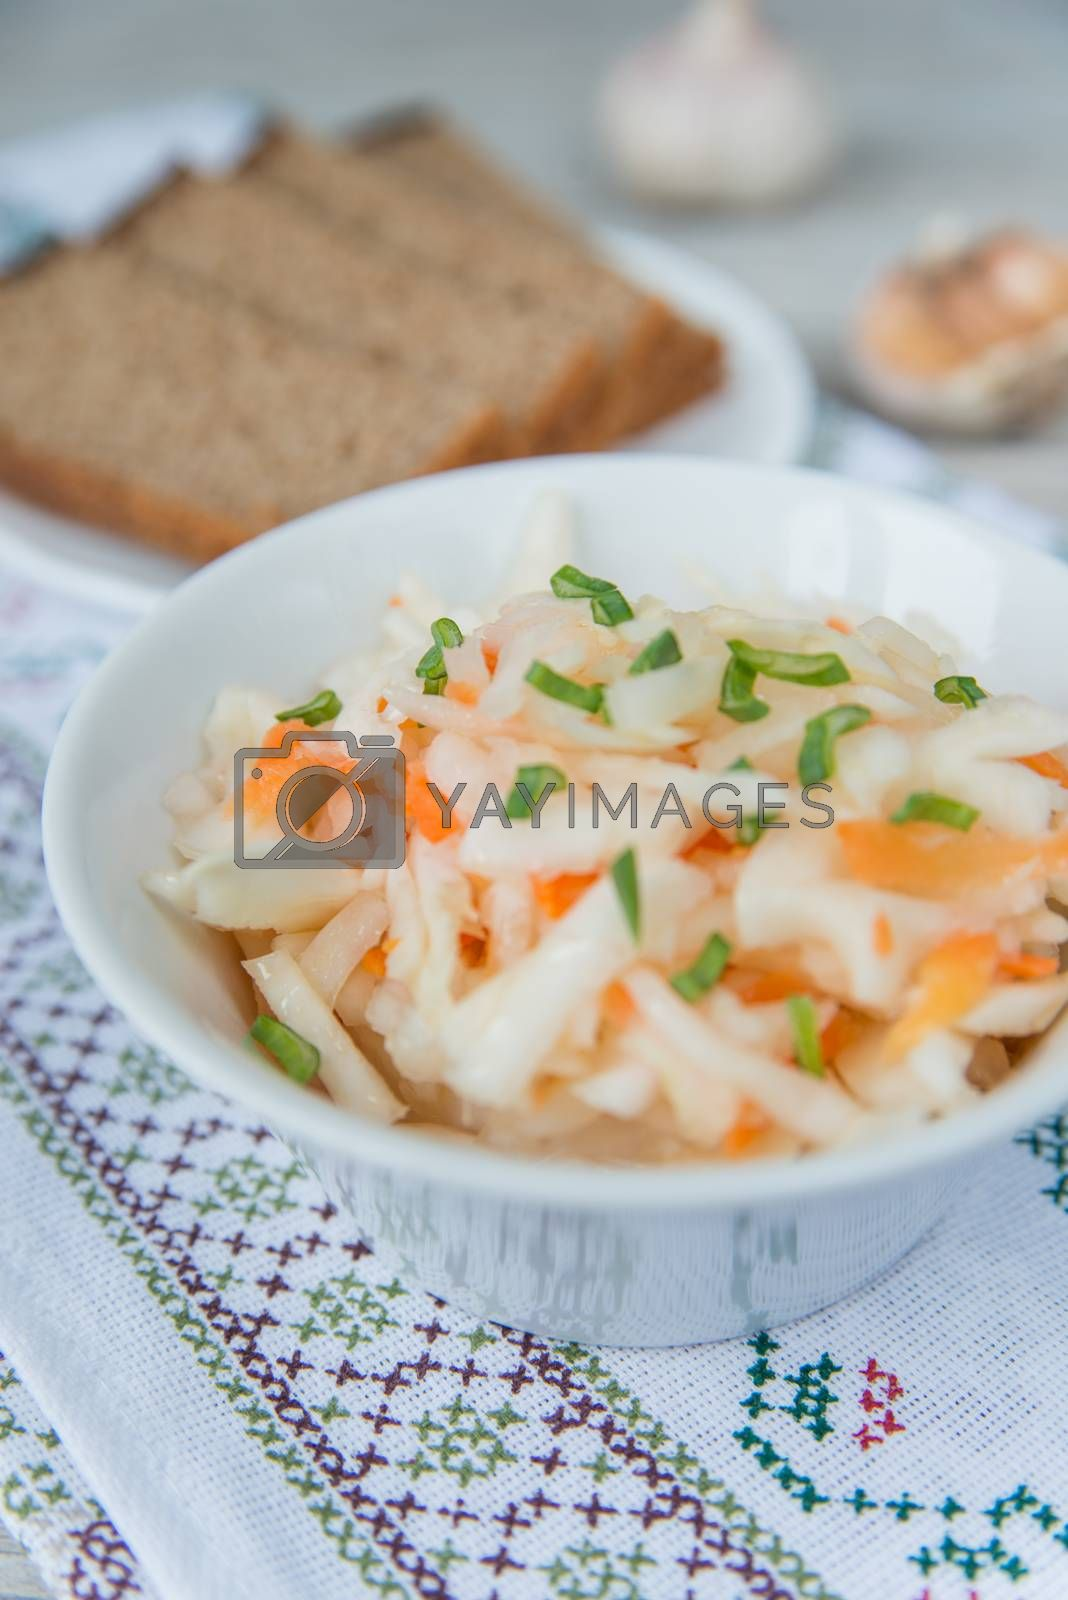 Royalty free image of Plate of the sauerkraut  by Linaga